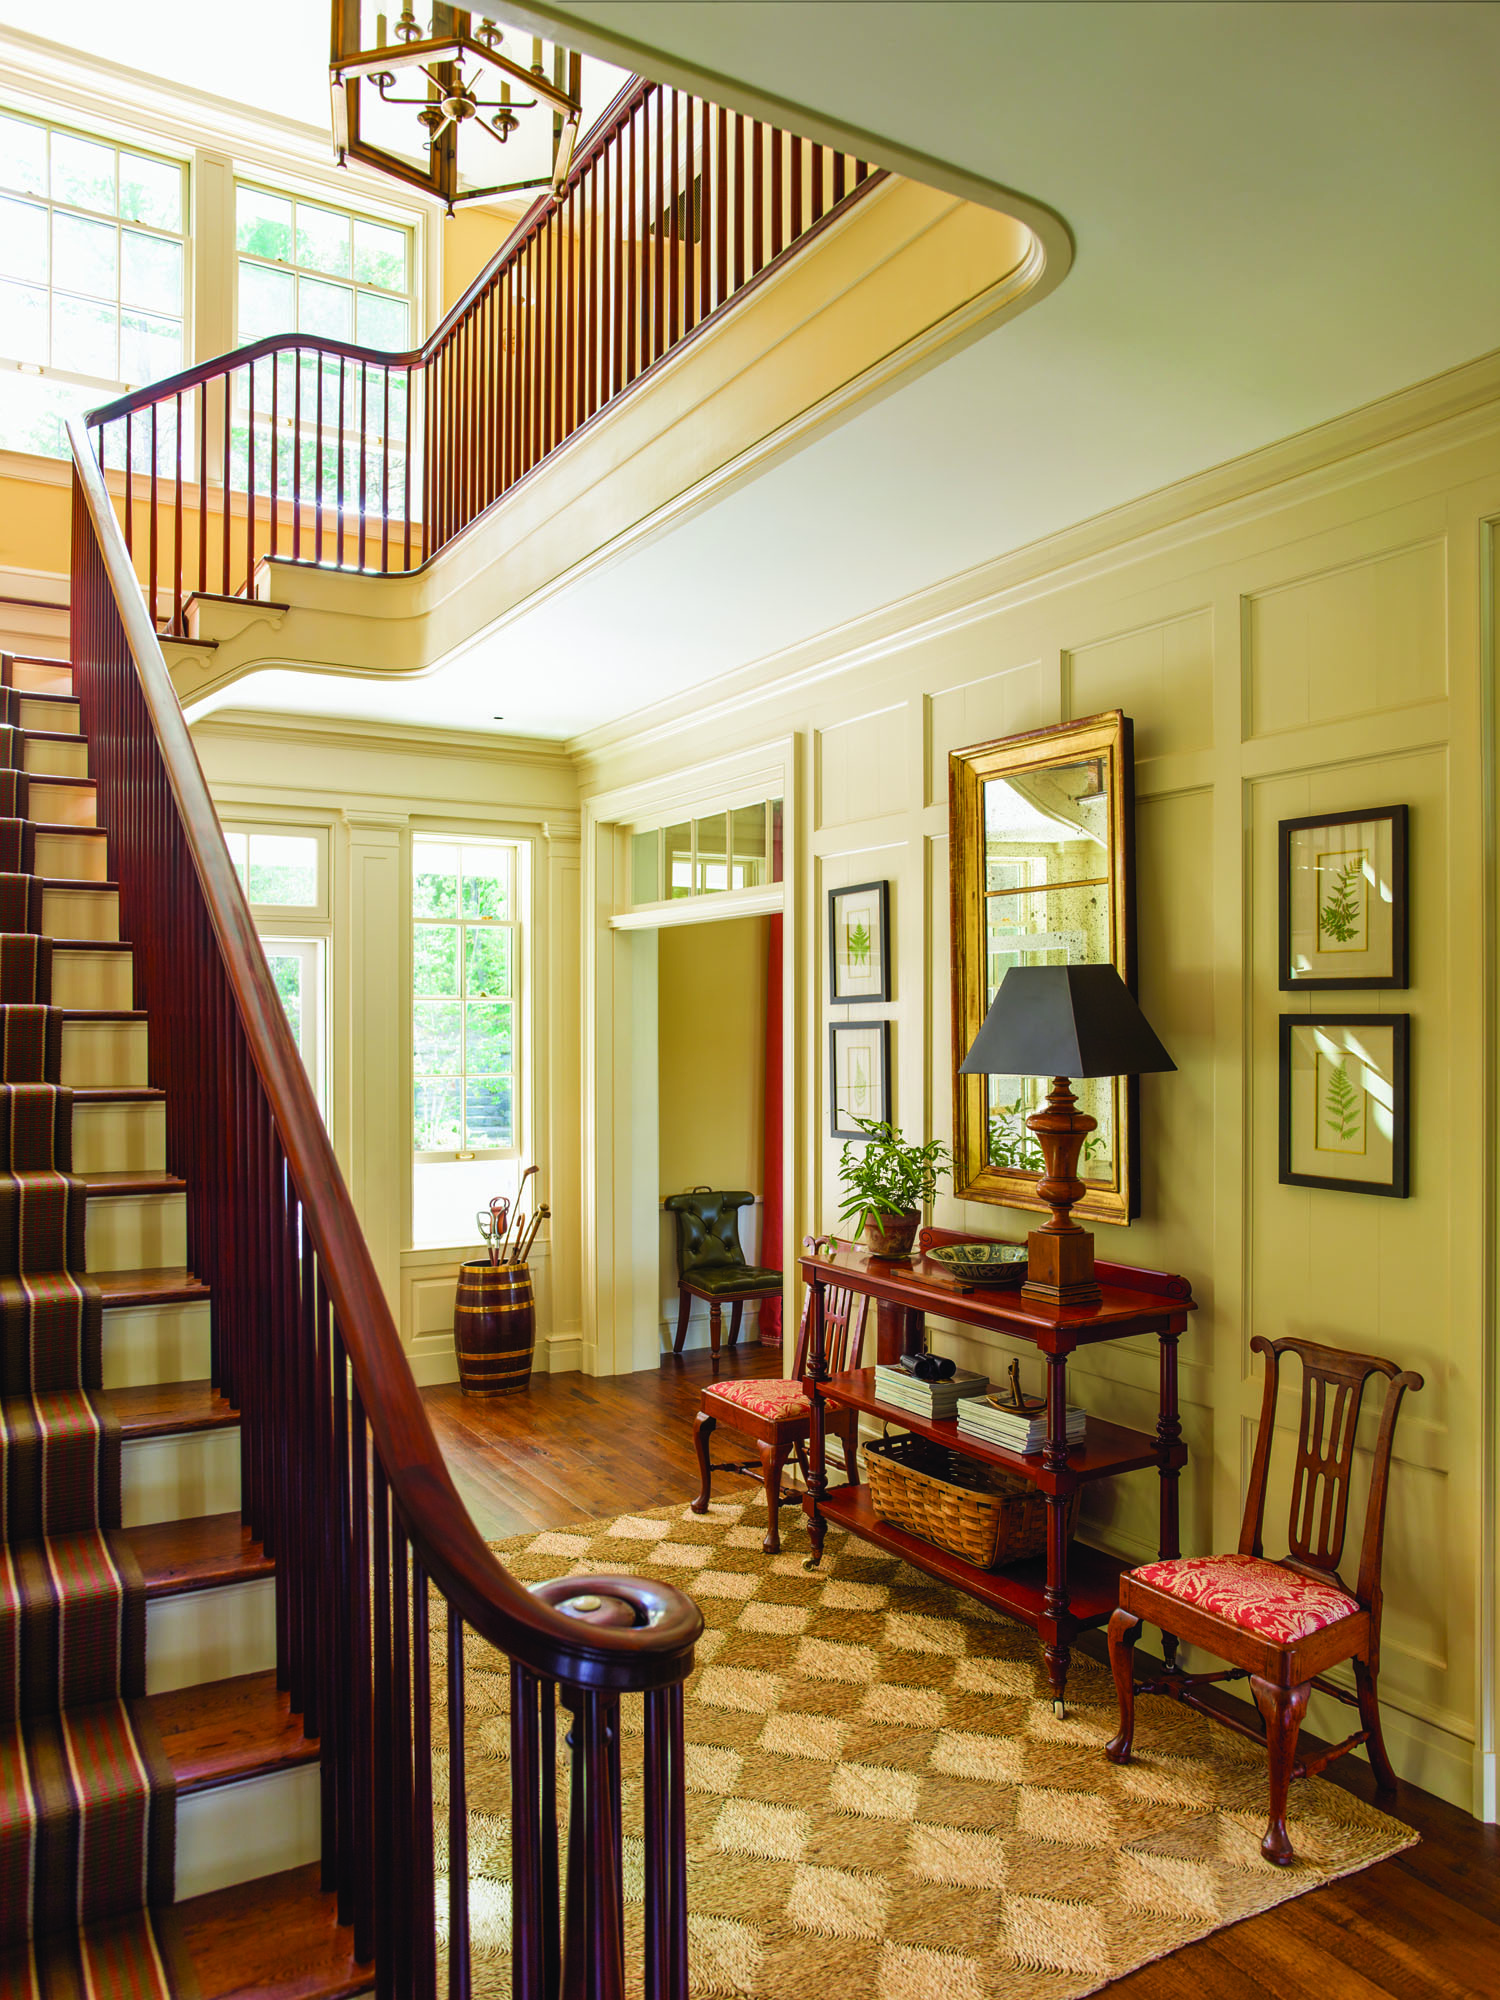 The entry hall encloses the house's main staircase and opens into its central public room, the great room